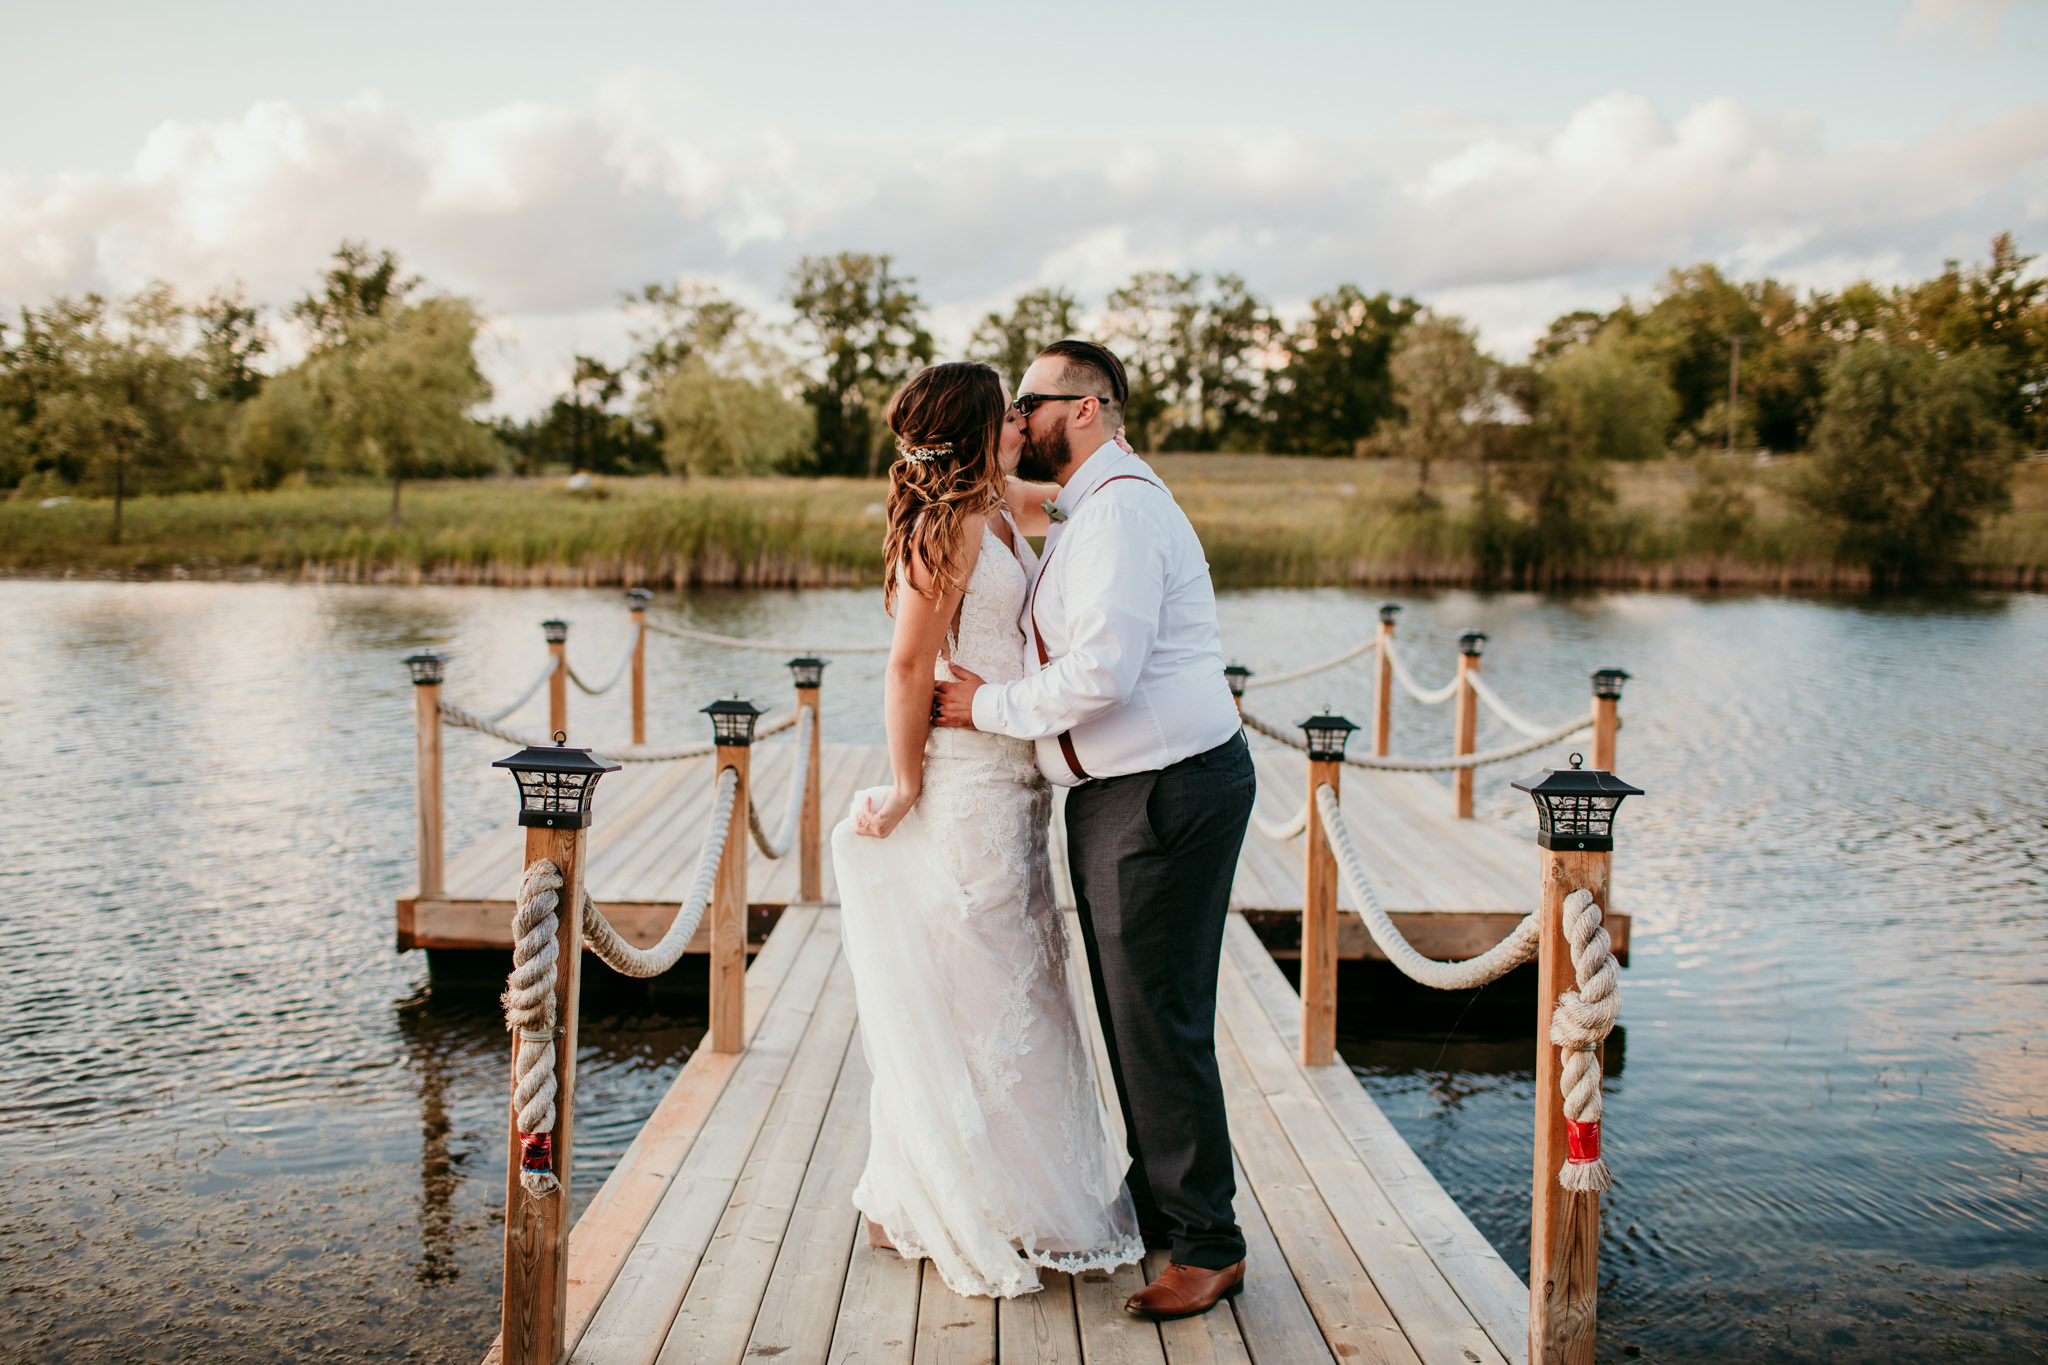 bride and groom kissing on a dock on the lake during their sunset wedding